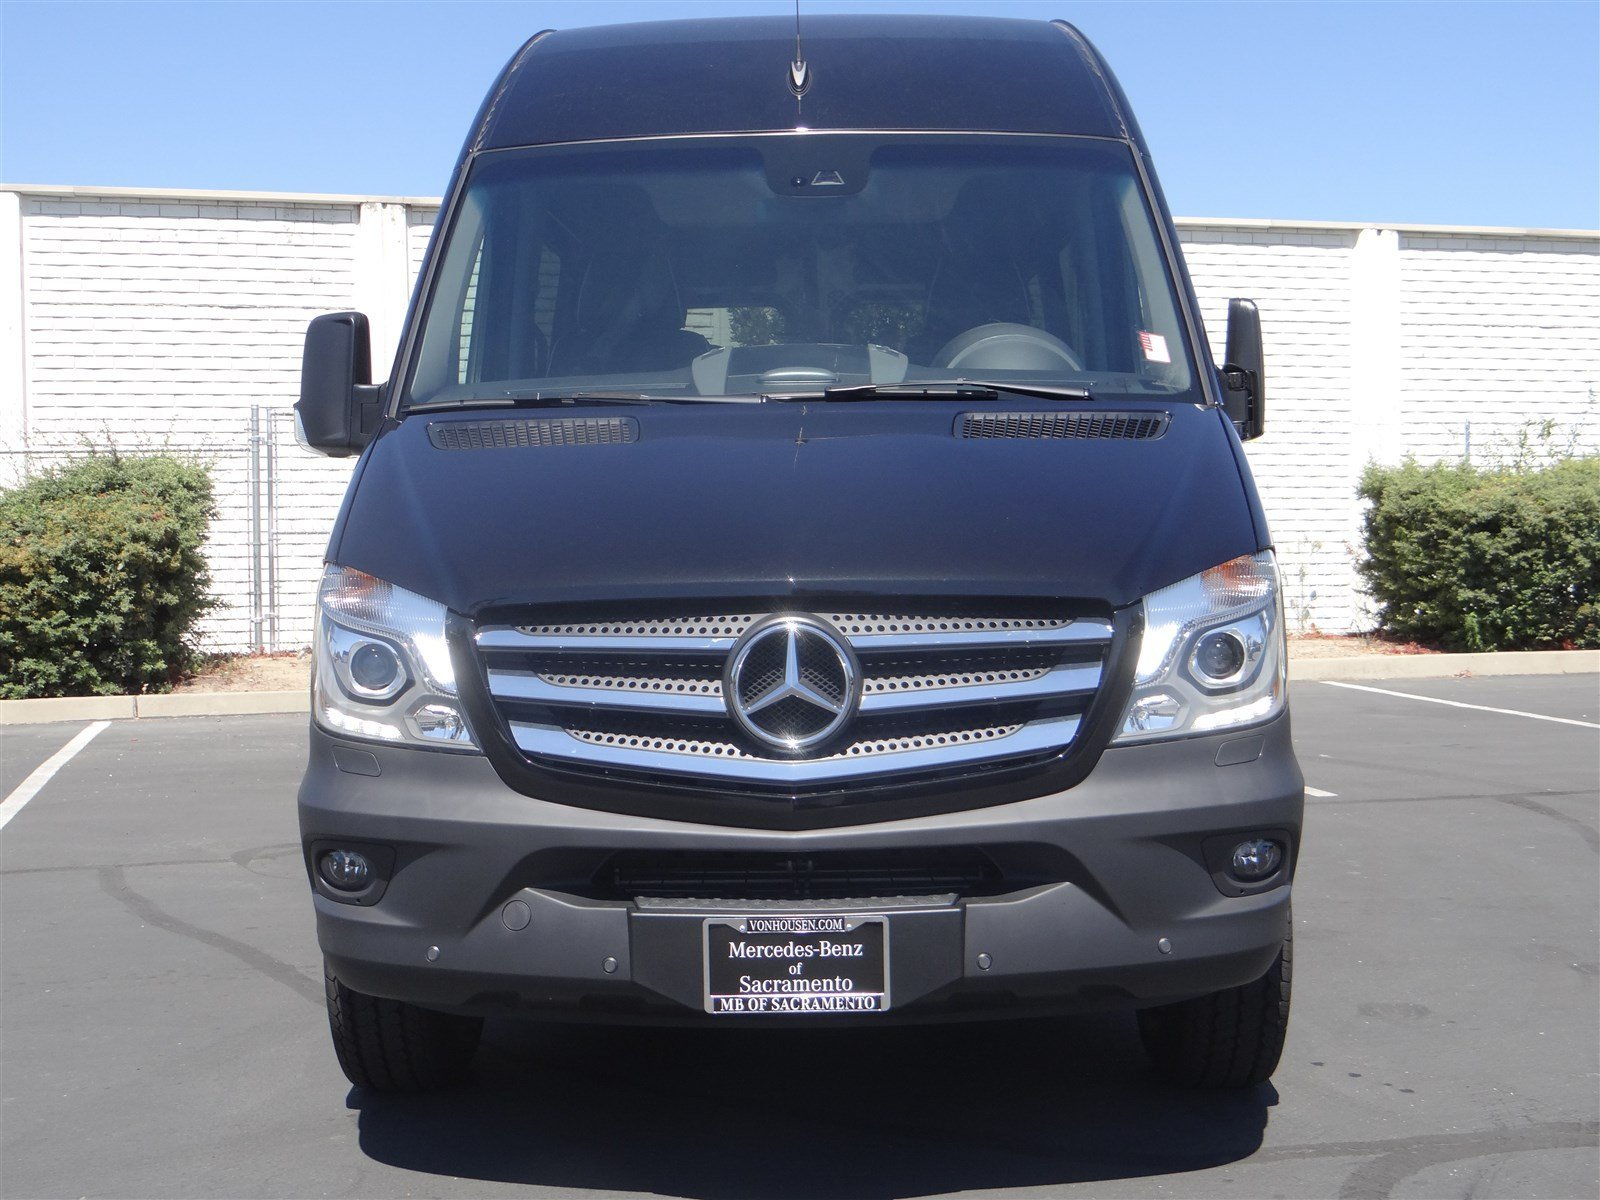 New 2016 mercedes benz sprinter passenger van m2pv144 full for Mercedes benz sacramento rocklin